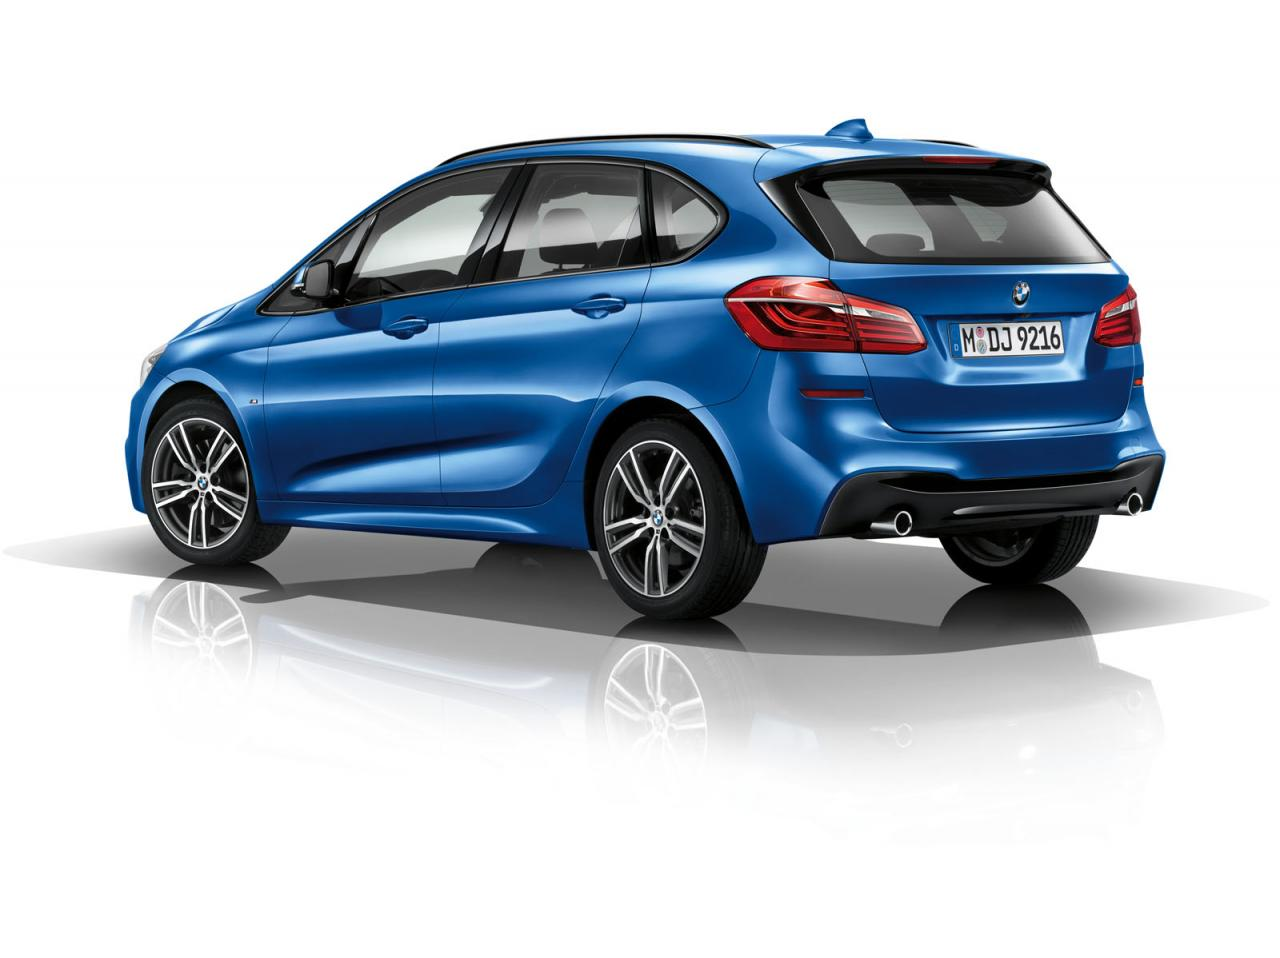 bmw launches 2 series active tourer m sport speed carz. Black Bedroom Furniture Sets. Home Design Ideas